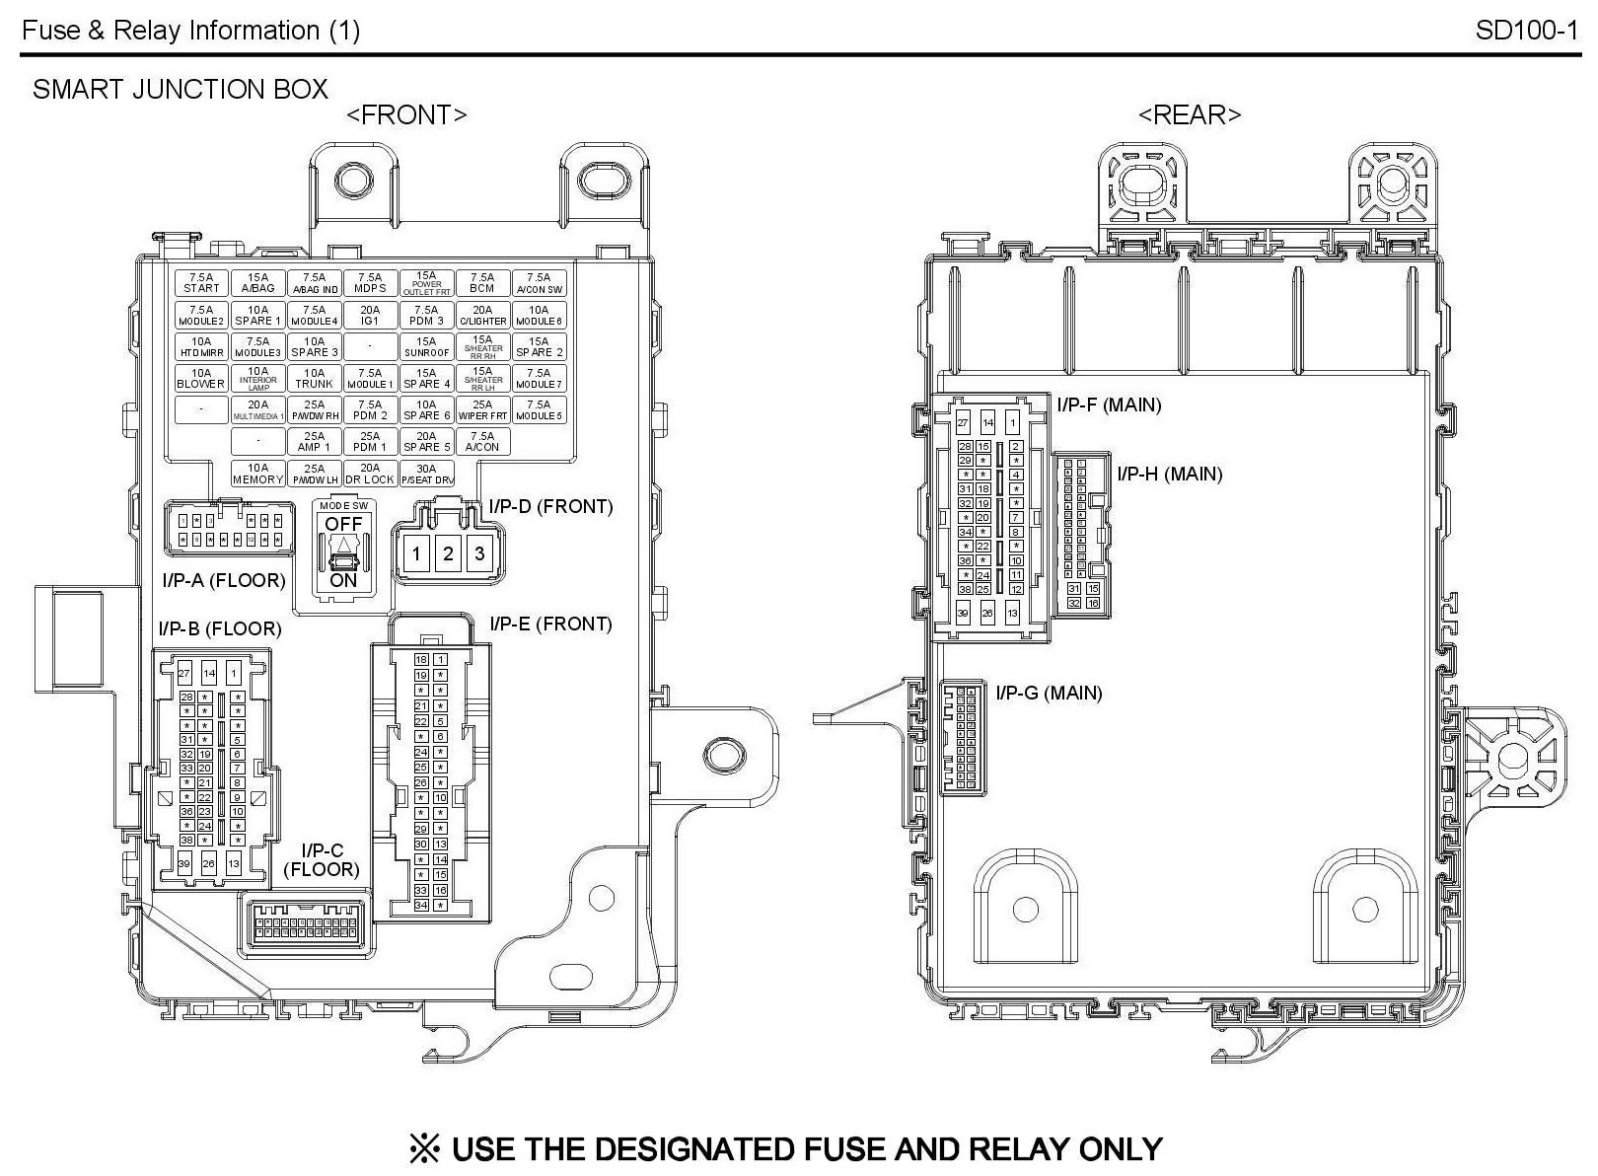 2012 Hyundai Sonata Wiring Diagram Library Pdf Fuse Box For Elantra 2002 Books Of U2022 Radio